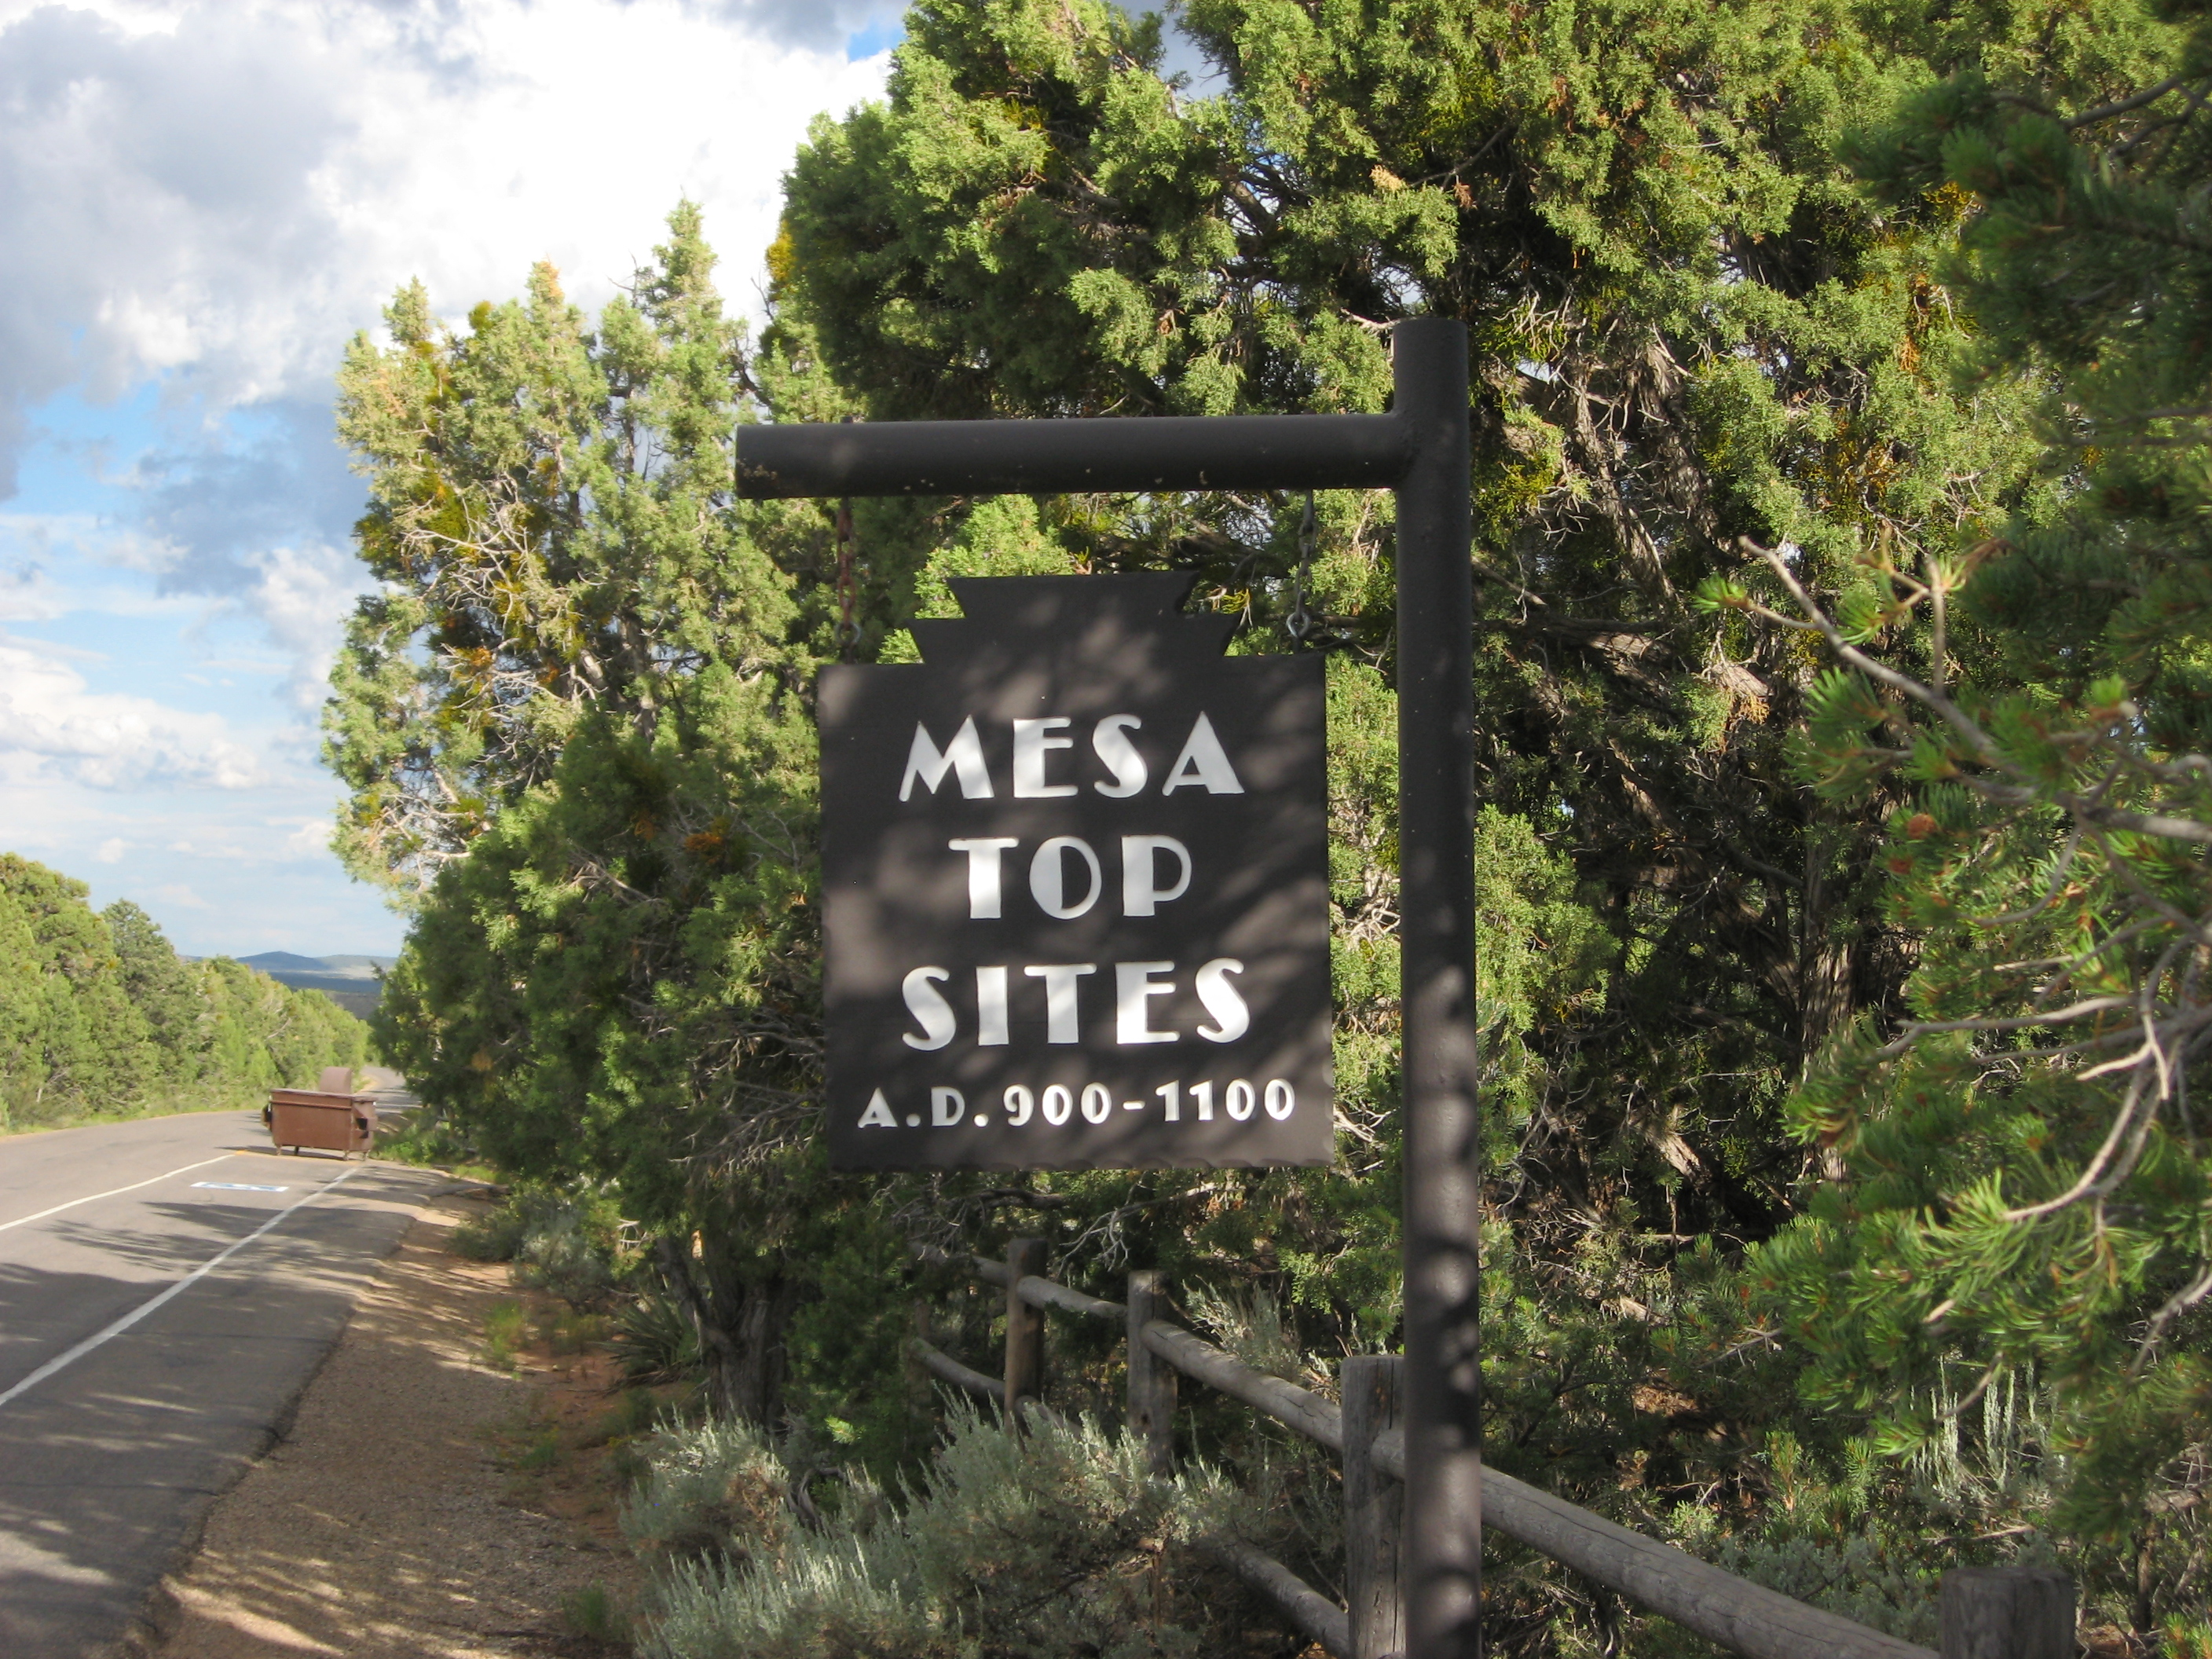 mesa dating sites Sorrento mesa ca - visit the most popular and simplest online dating site to flirt, chart, or date with interesting people online, sign up for free.